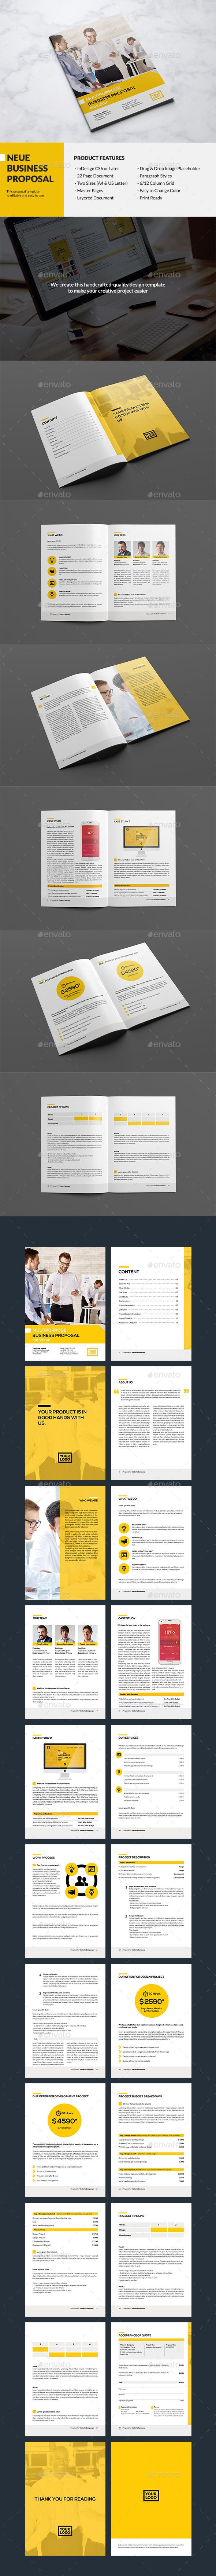 Neue - Website #Proposal - Proposals & #Invoices Stationery Download here: https://graphicriver.net/item/neue-website-proposal/12984465?ref=alena994